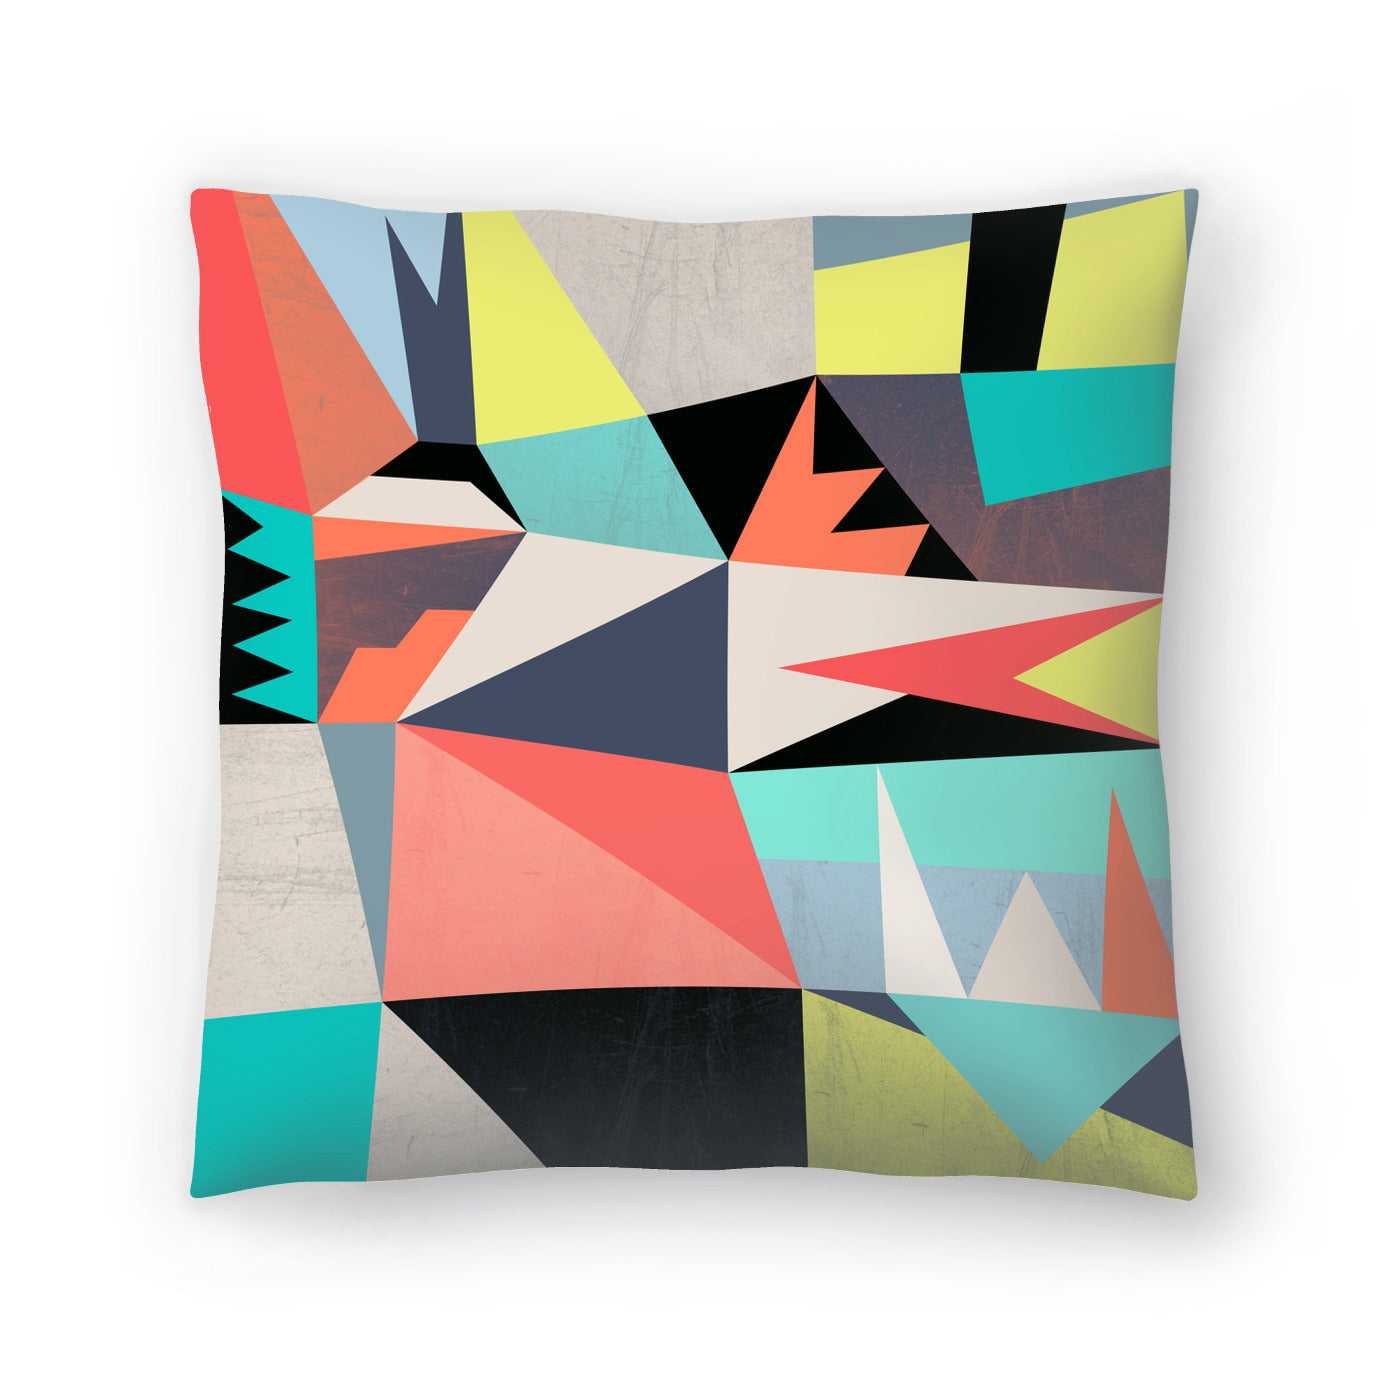 Graphic 3 by Susana Paz Decorative Pillow - Decorative Pillow - Americanflat